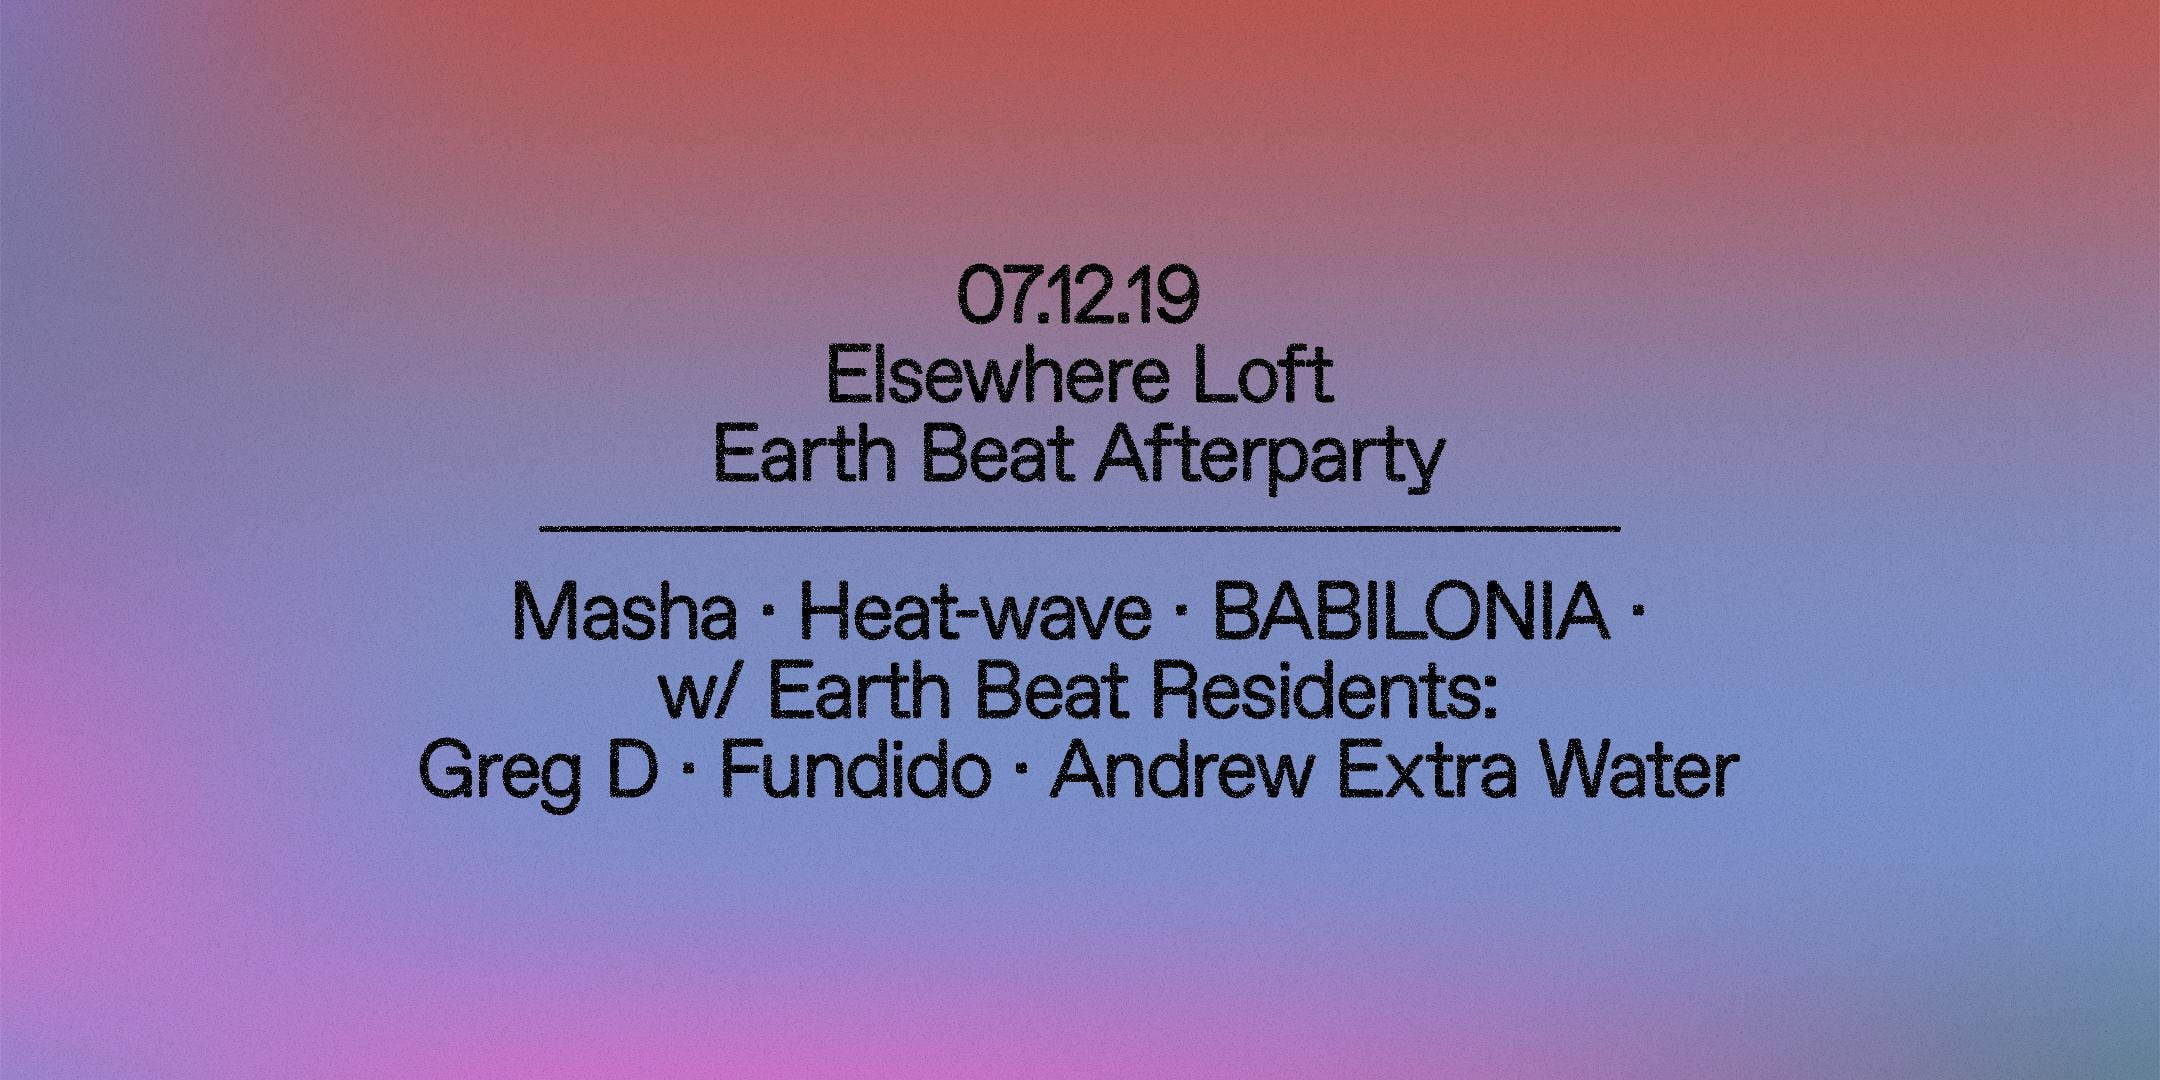 Earth Beat Afterparty w/ Masha, Heat-Wave, Babilonia, Earth Beat Residents:  Greg D, Fundido & Andrew Extra Water